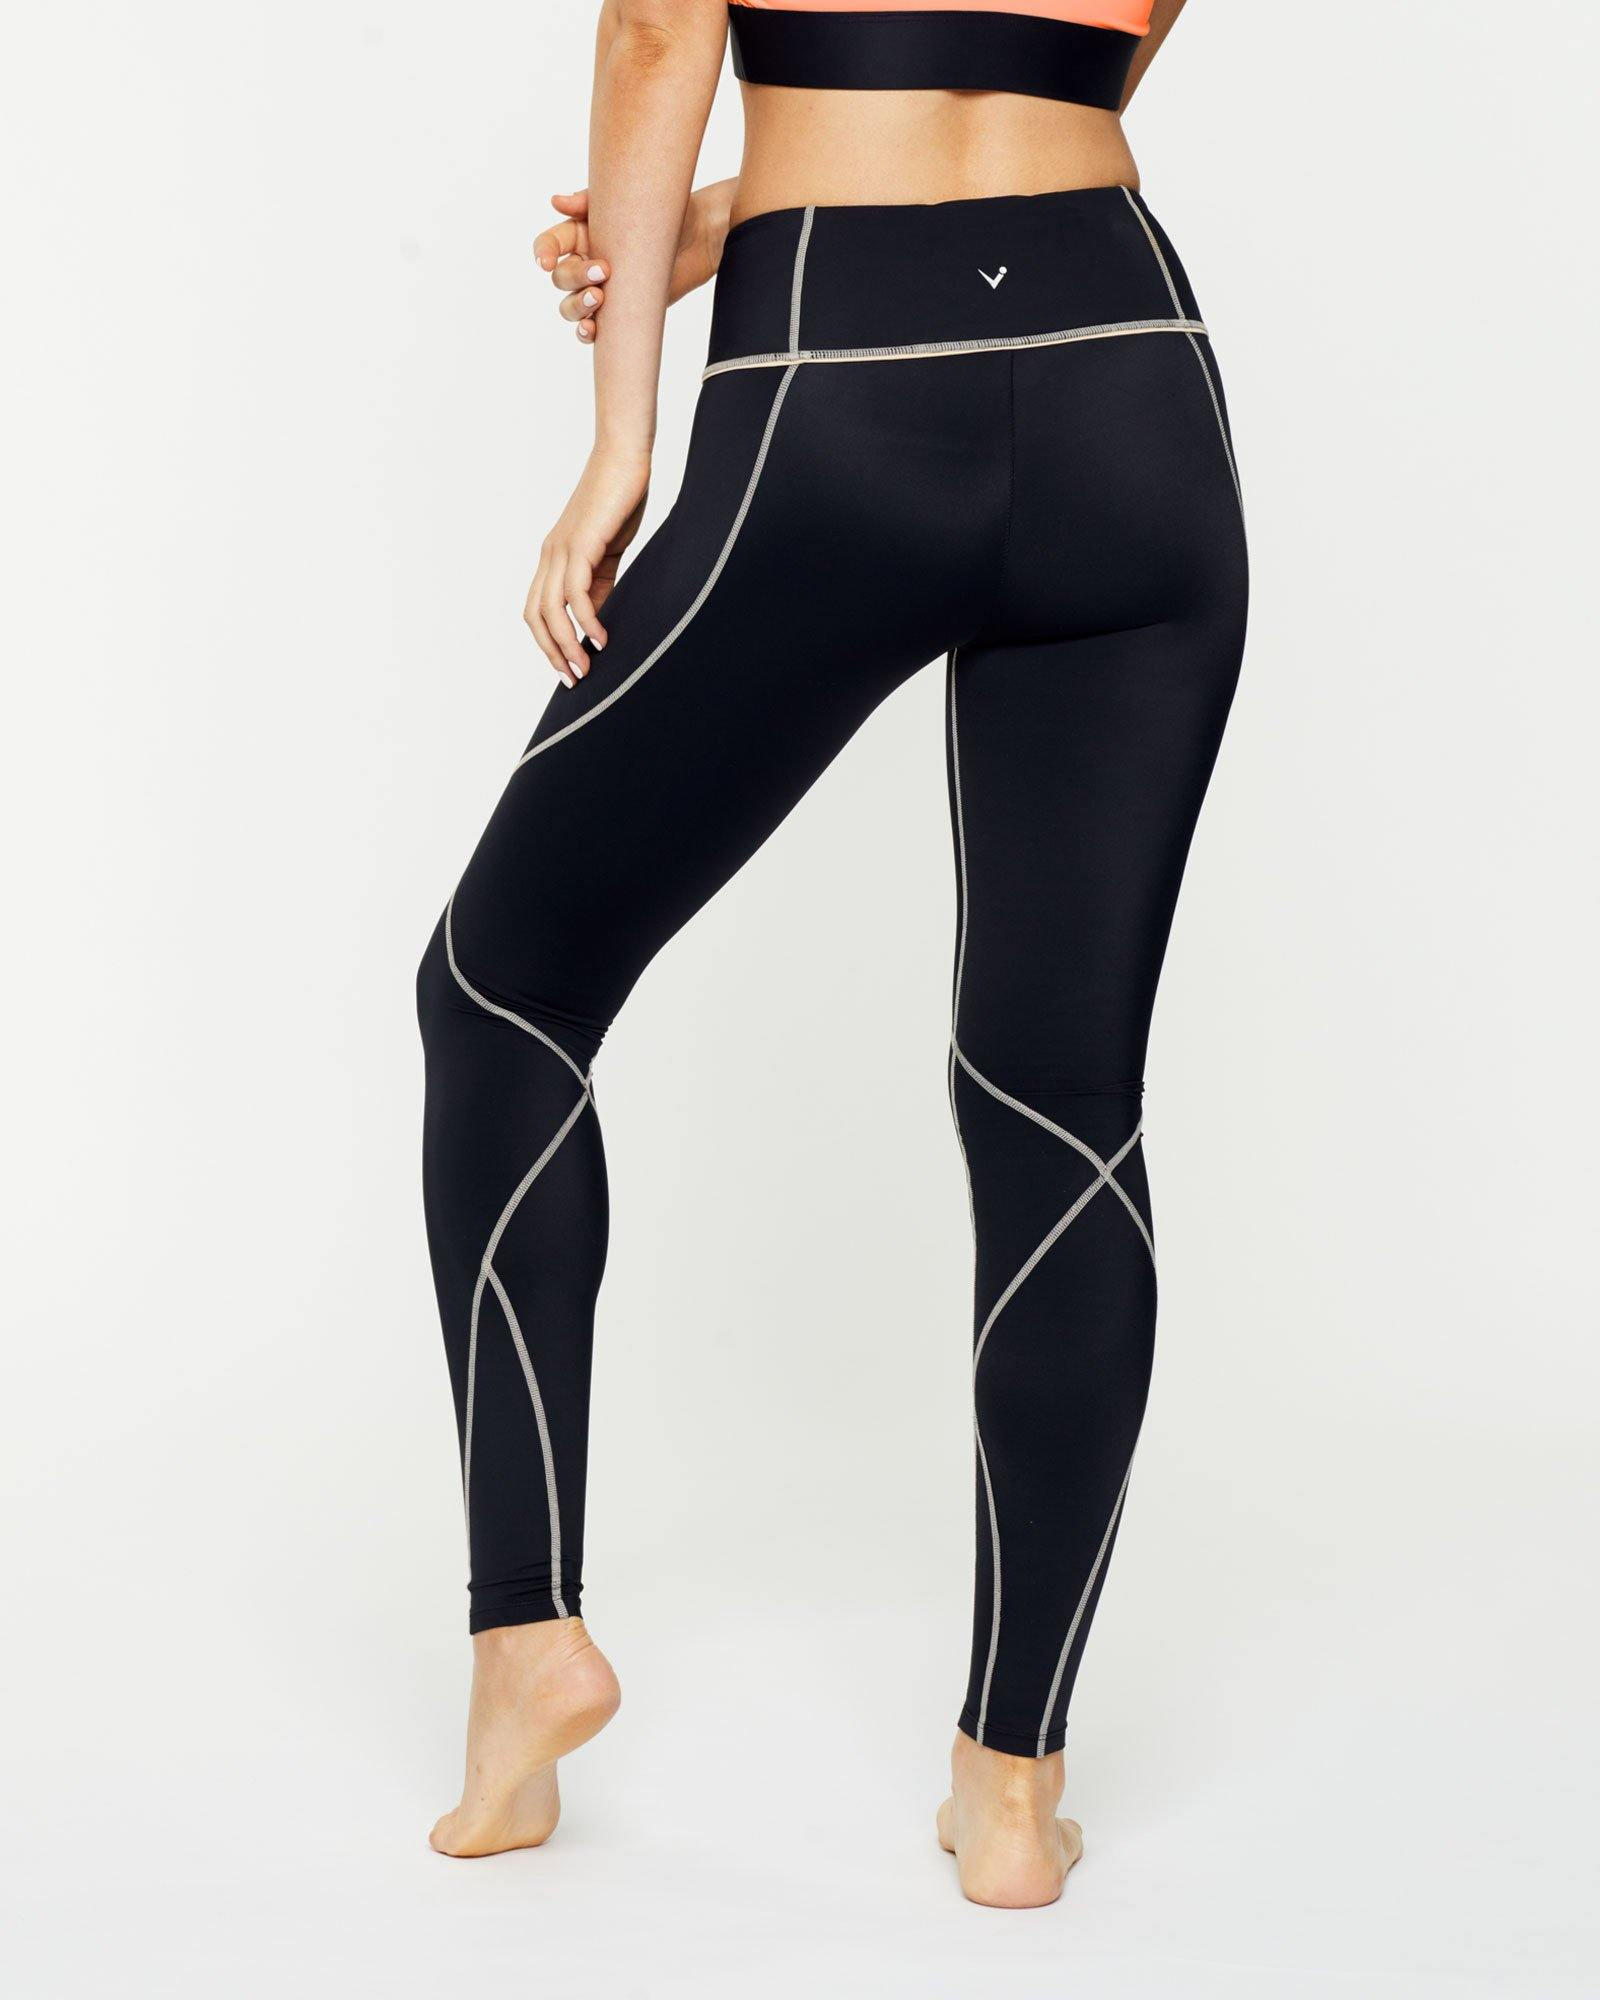 Warrior Vastus mid waist full length legging with contrast stitching, back view